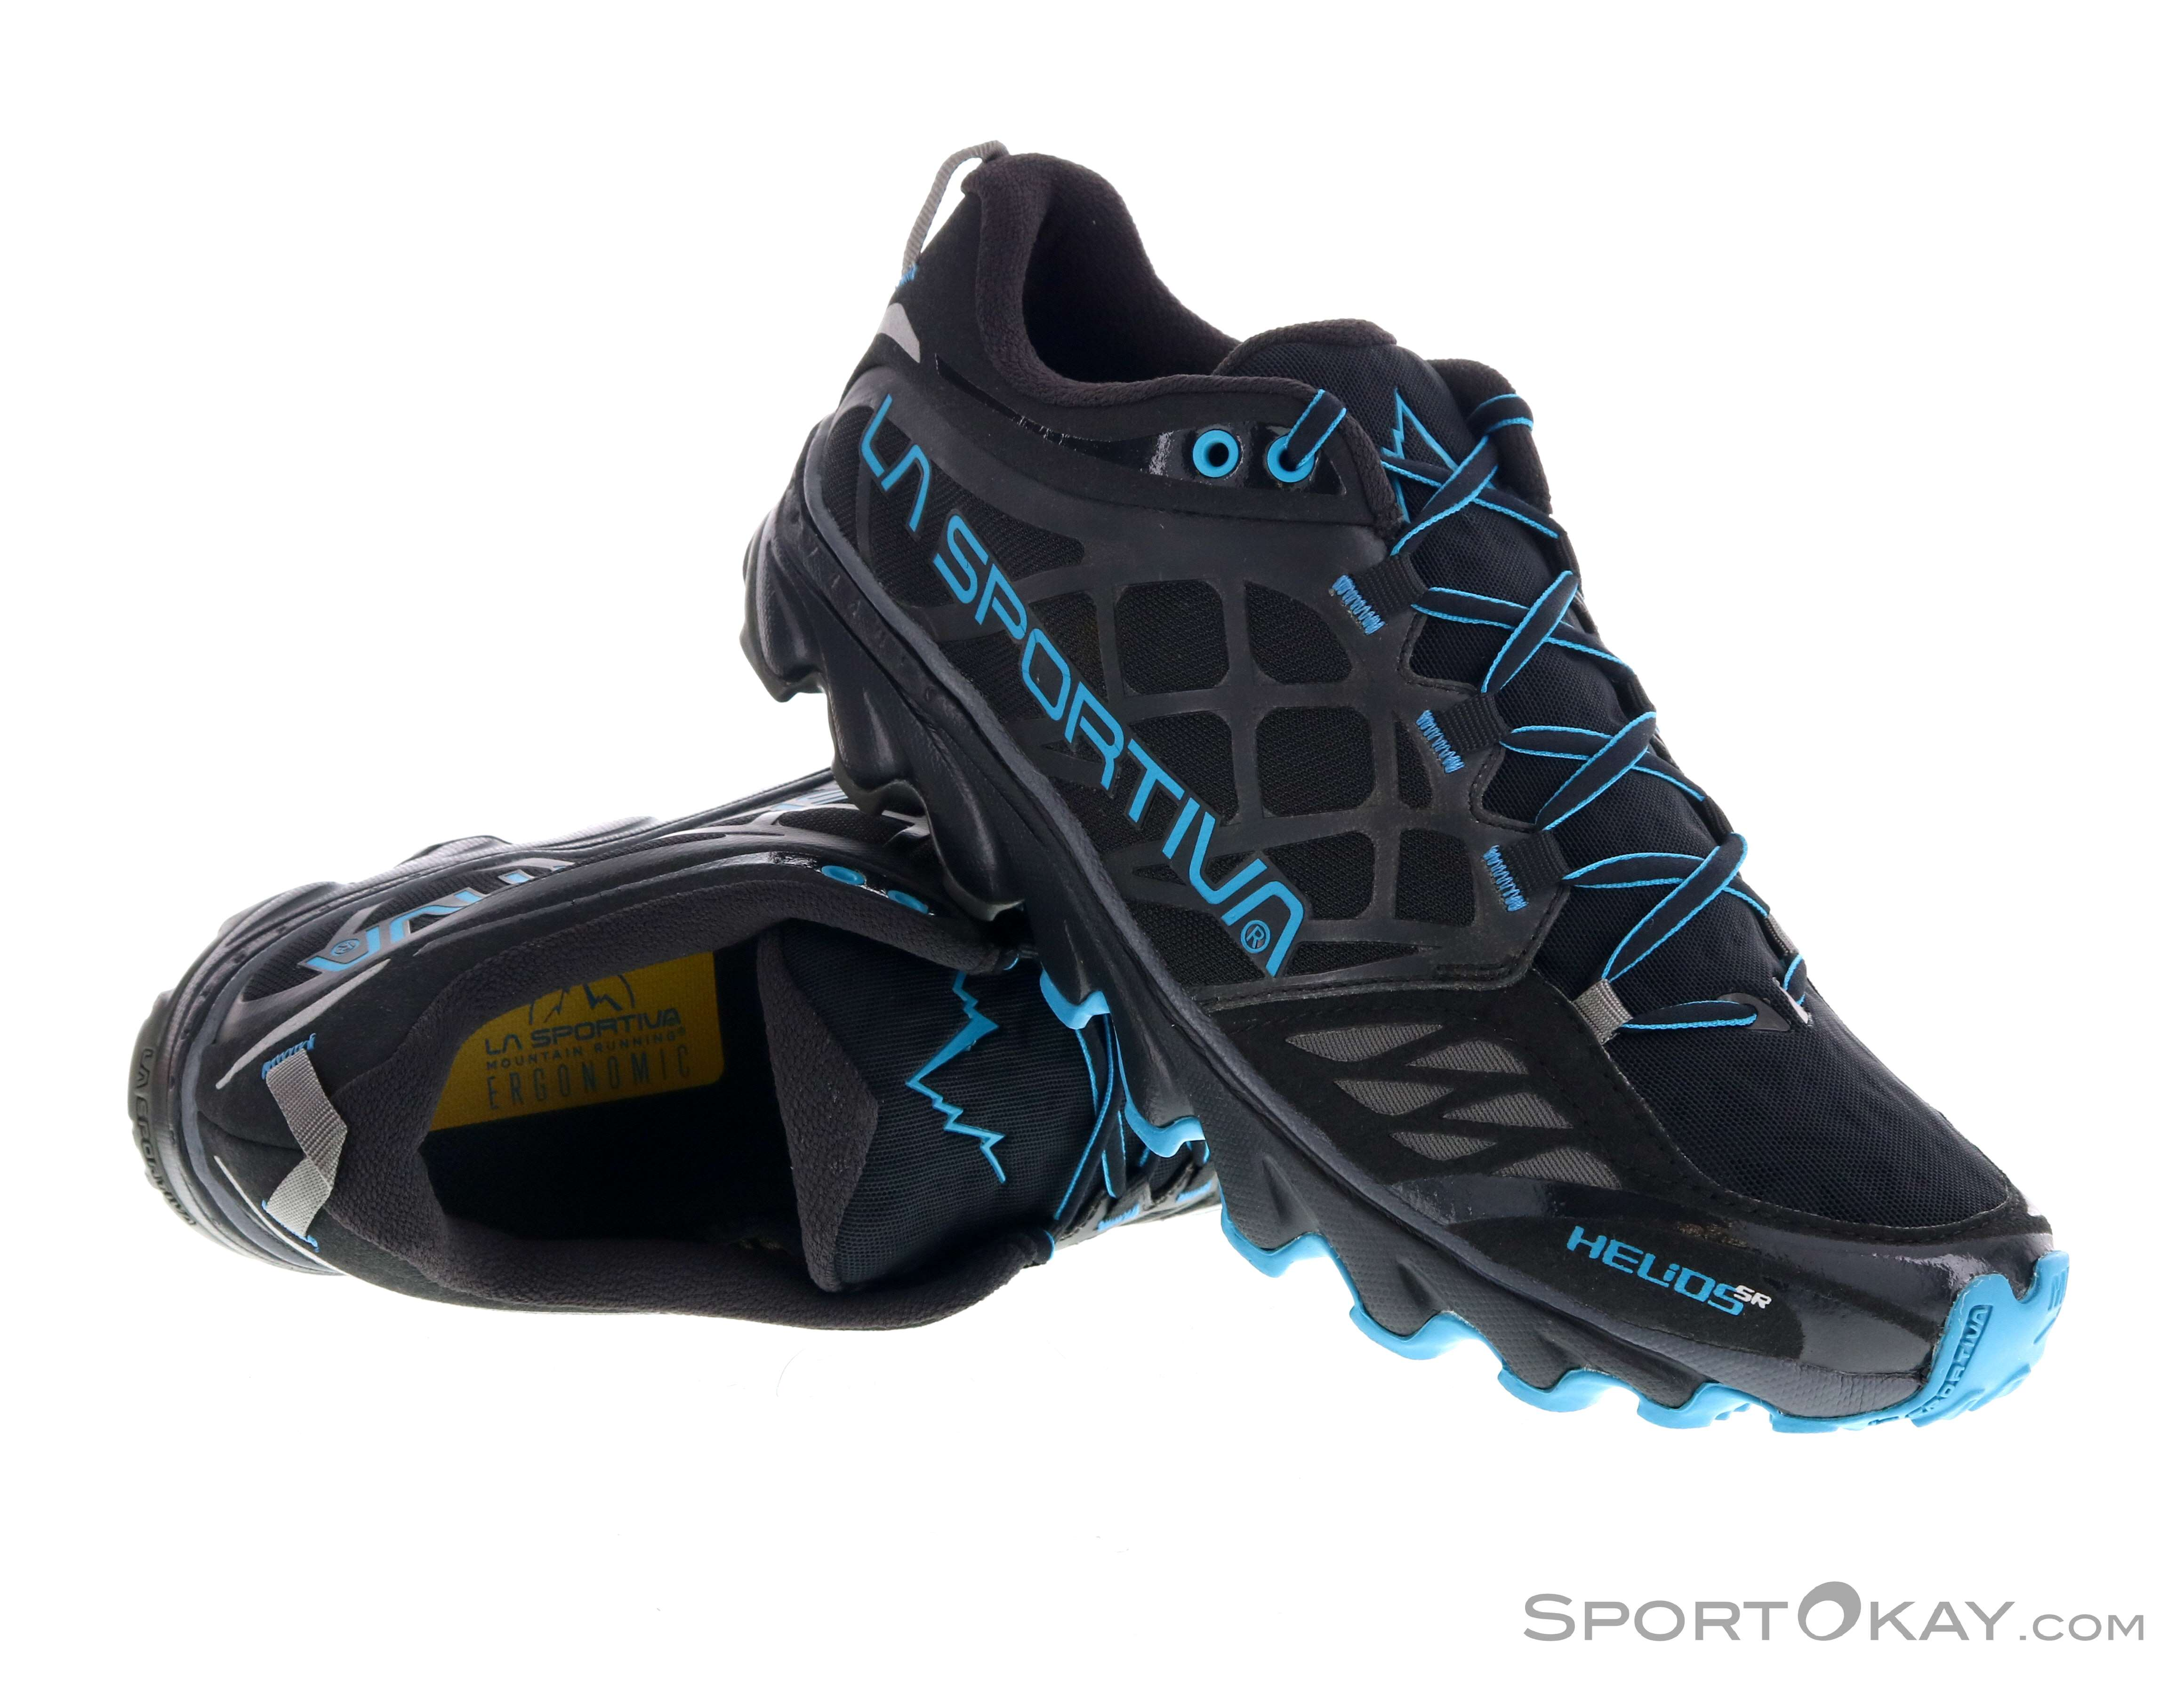 La Sportiva La Sportiva Helios SR Mens Trail Running Shoes